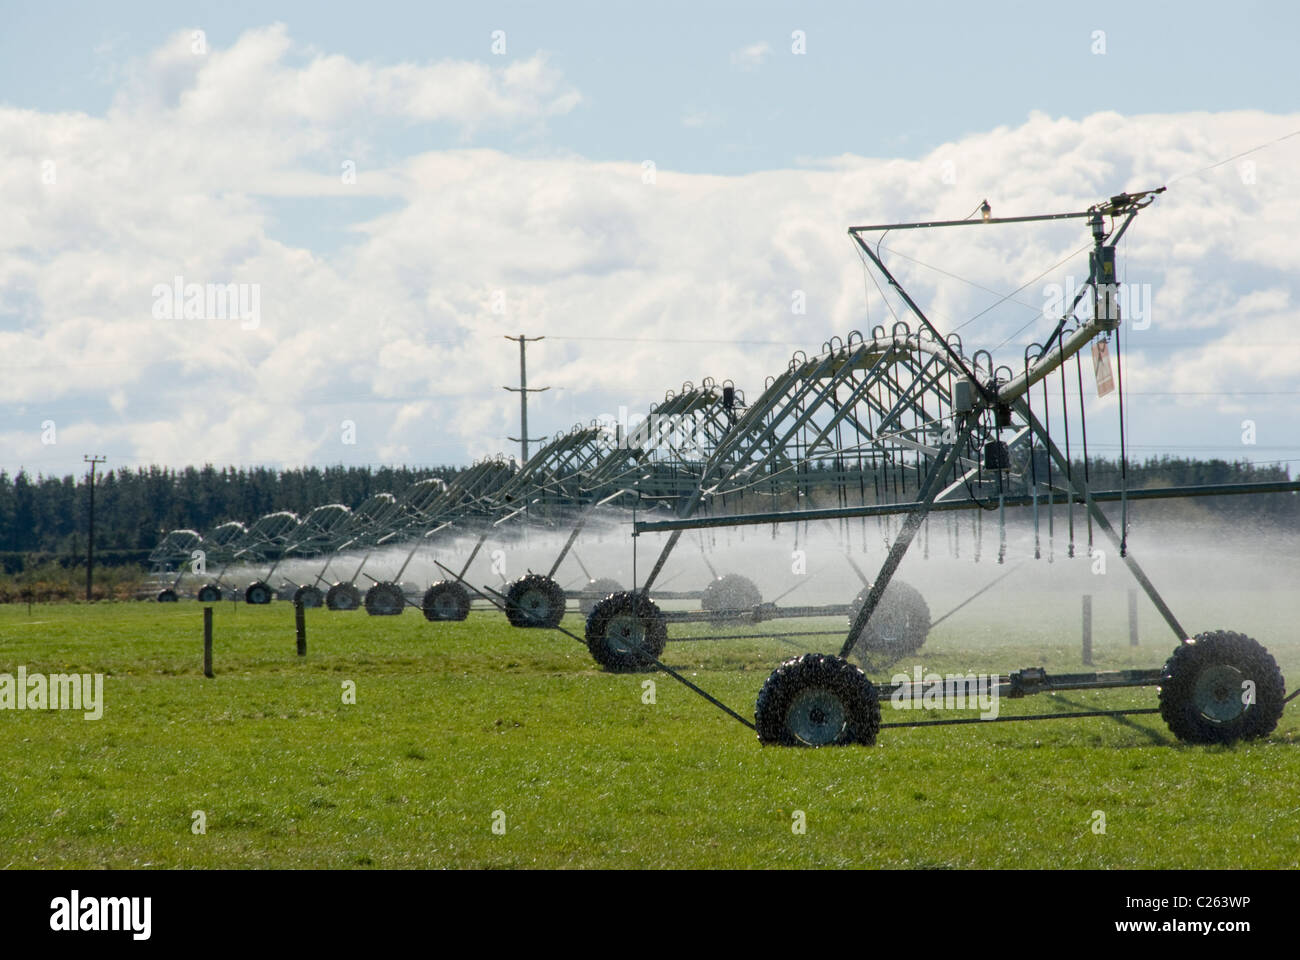 Mobile irrigation sprinkler system in use on the Canterbury Plains, New Zealand - Stock Image